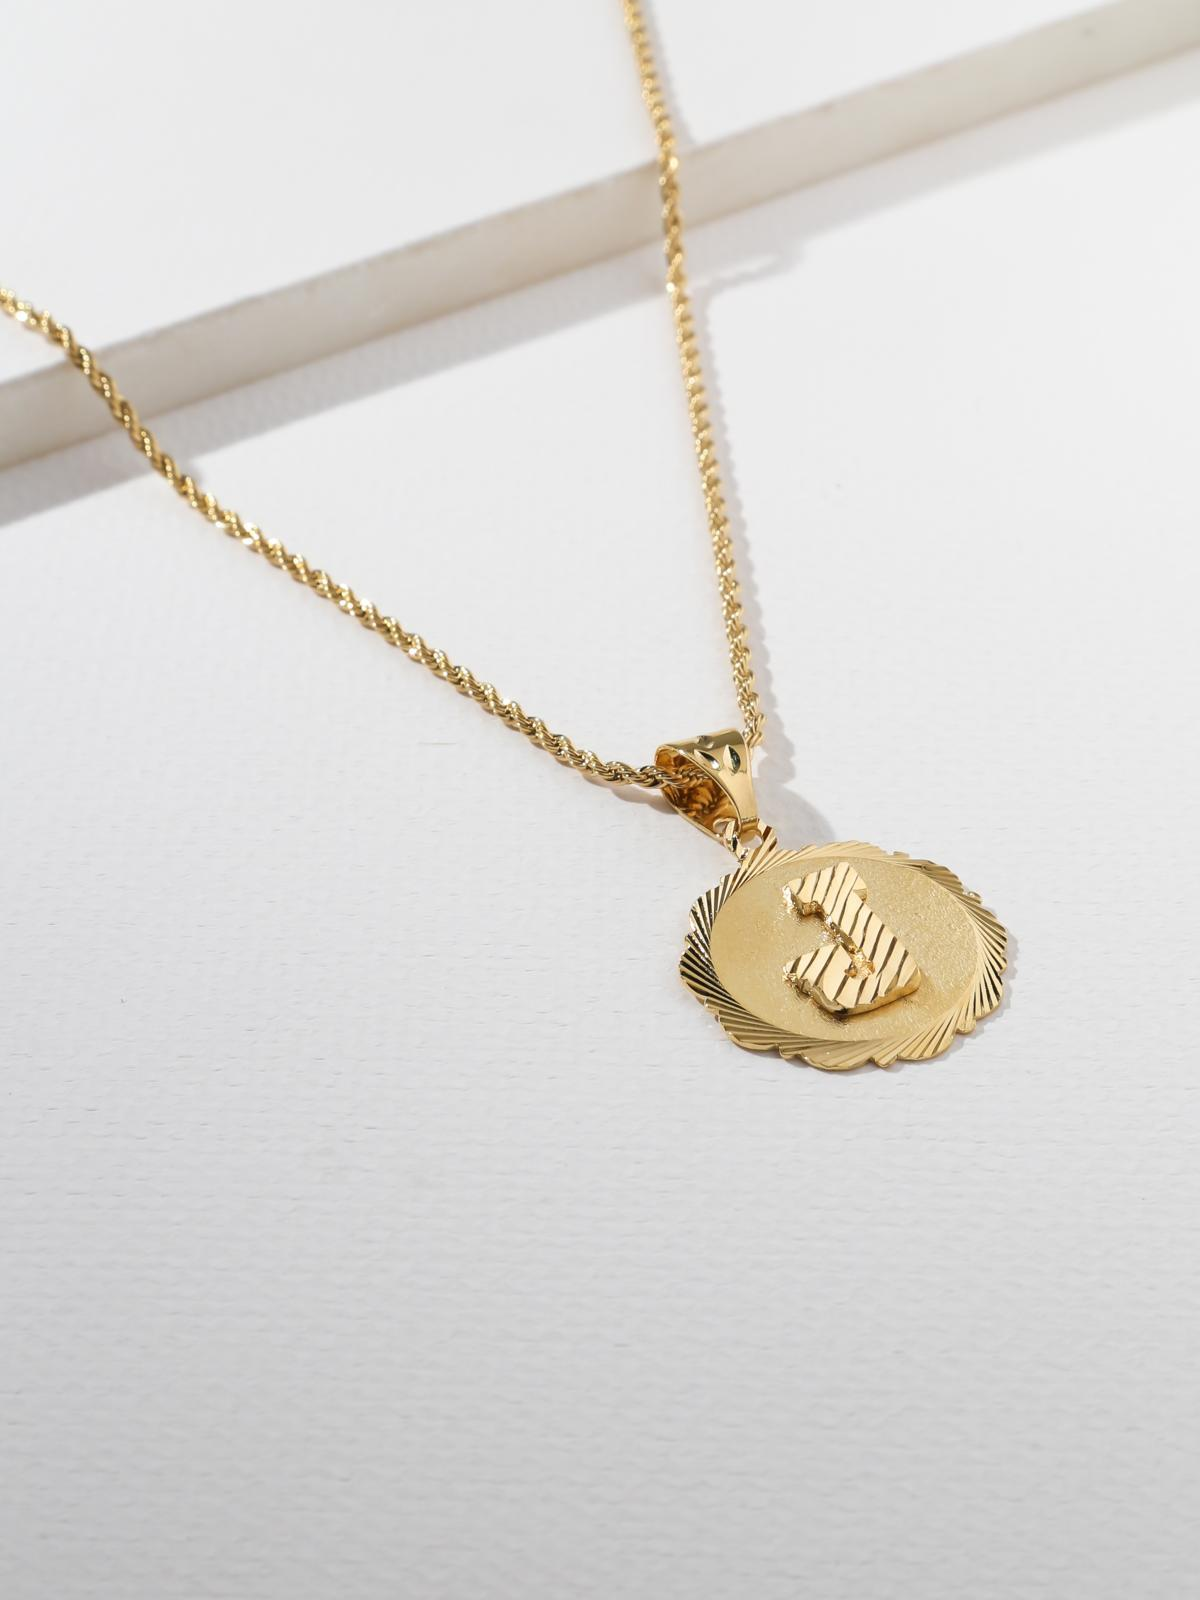 The Twisted Initial Necklaces